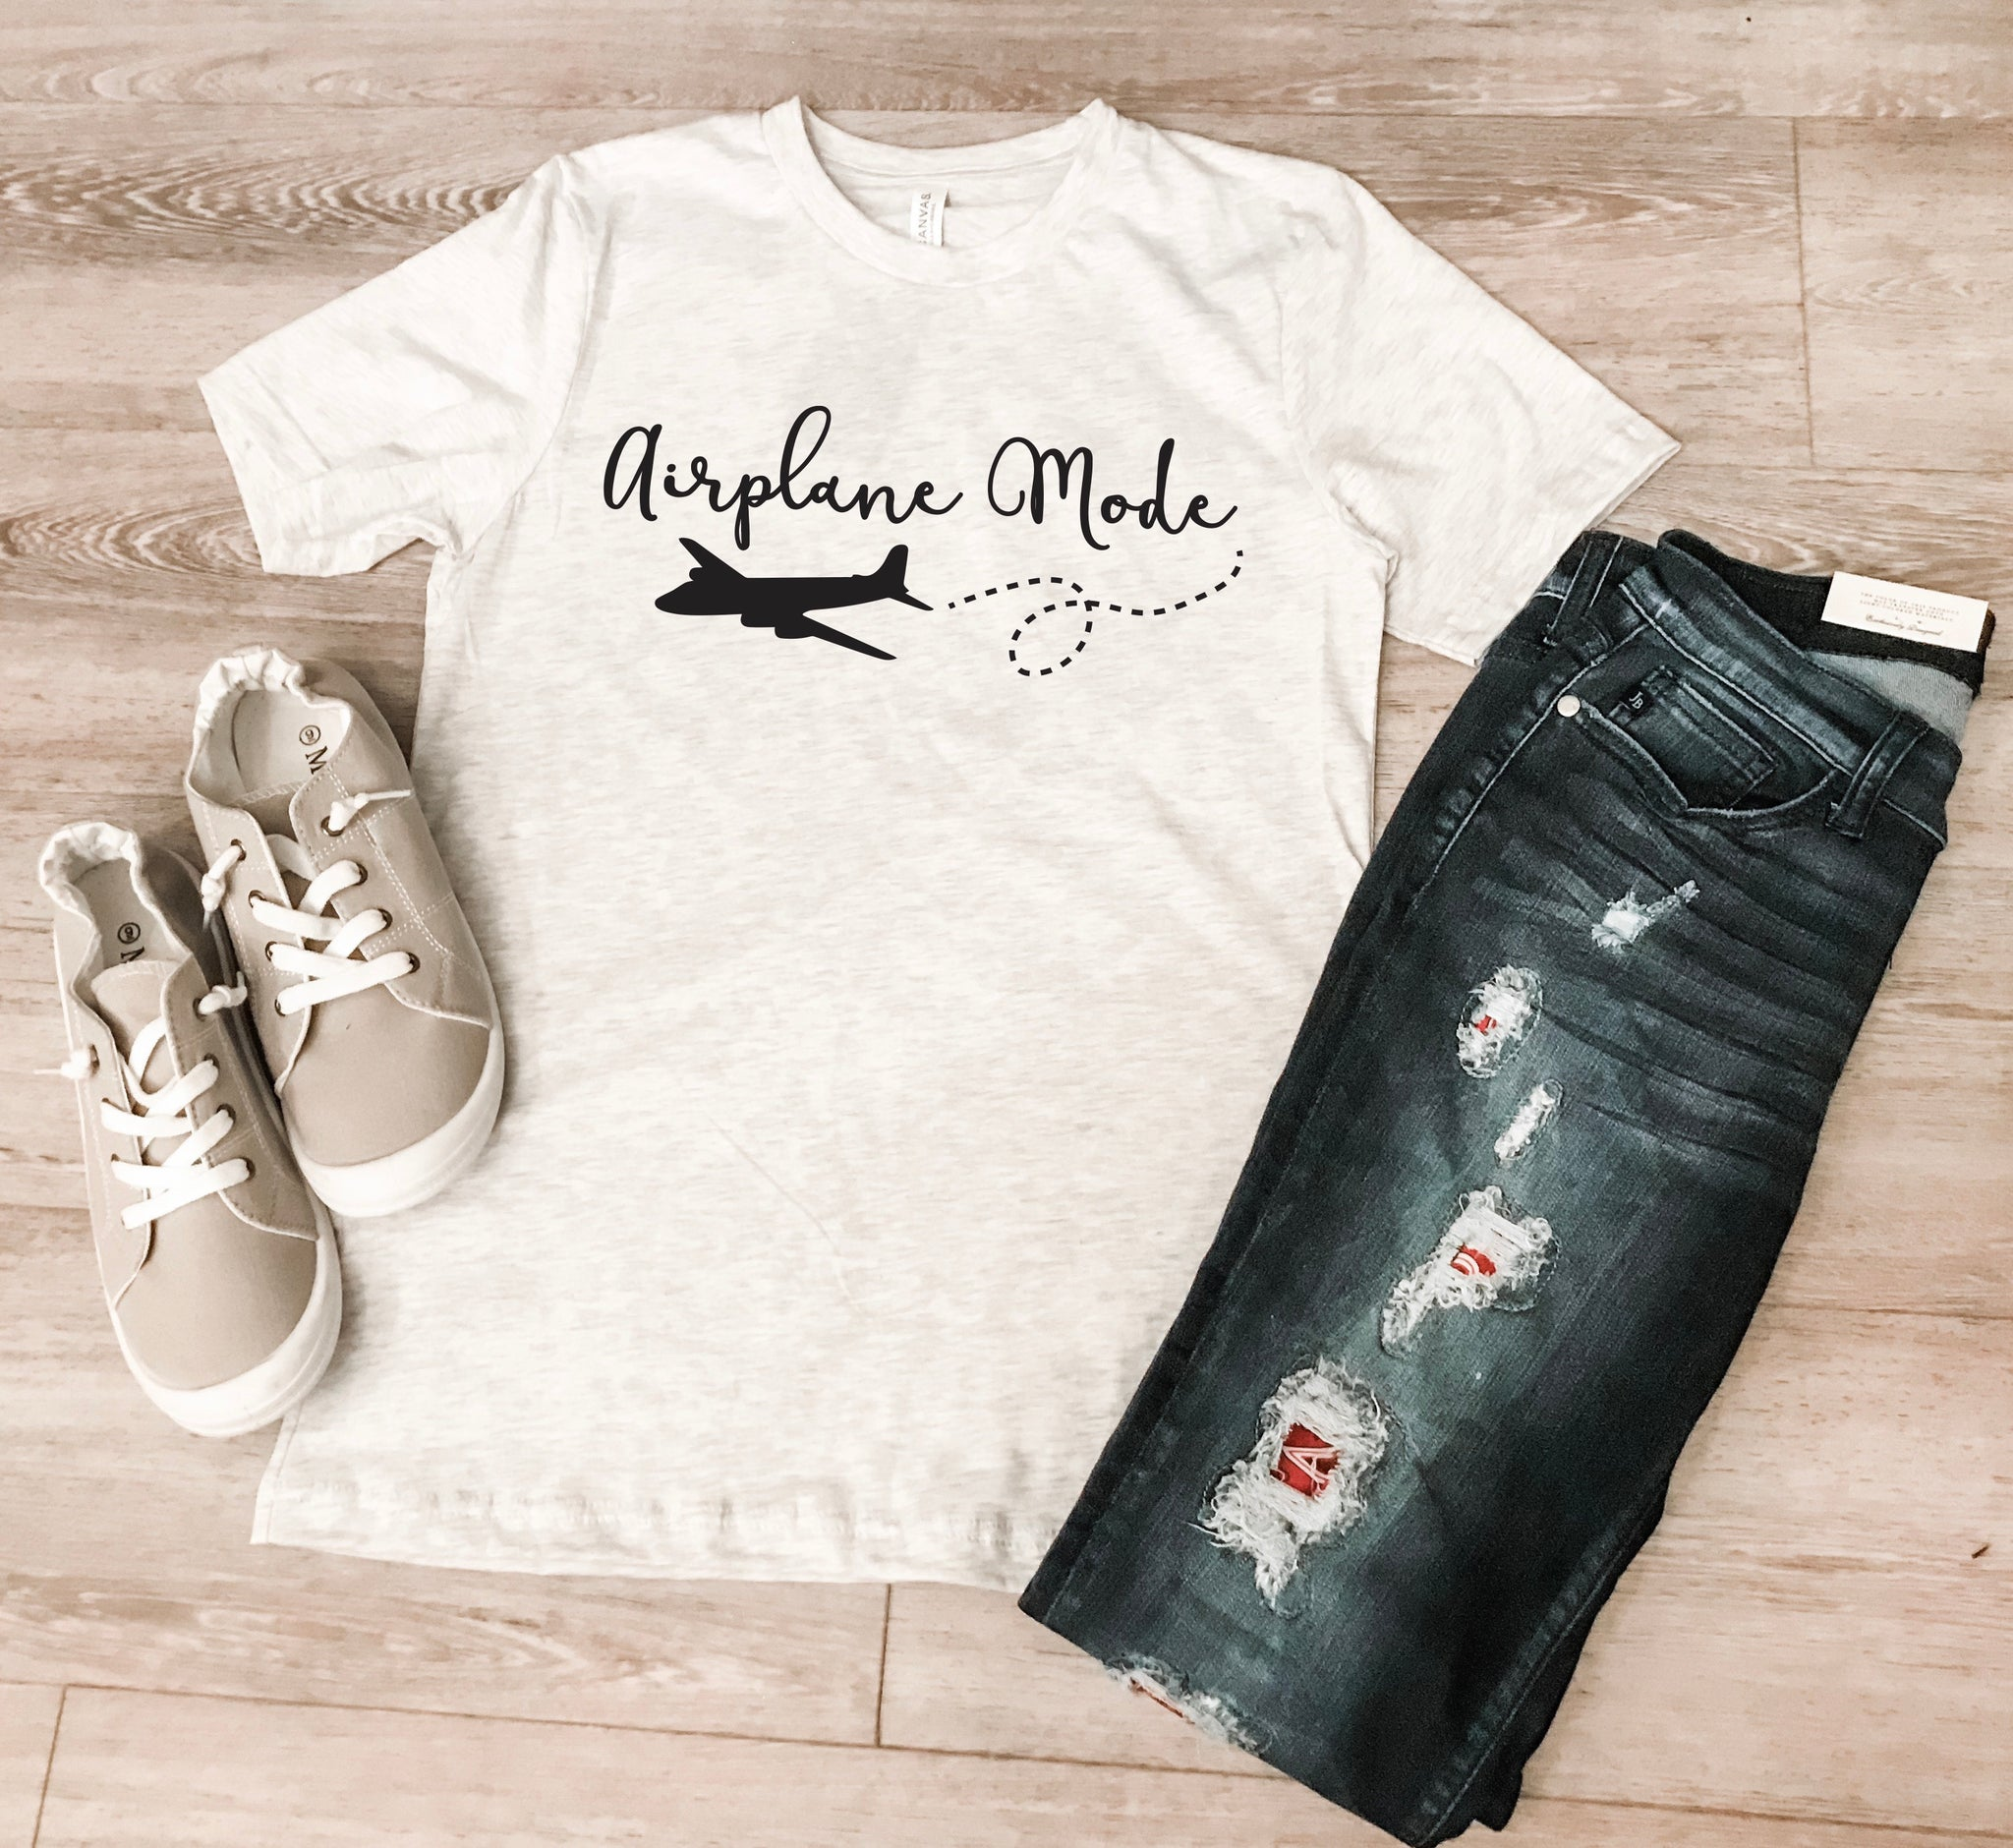 19.05.16i - Market Apparel Designs - airplane mode